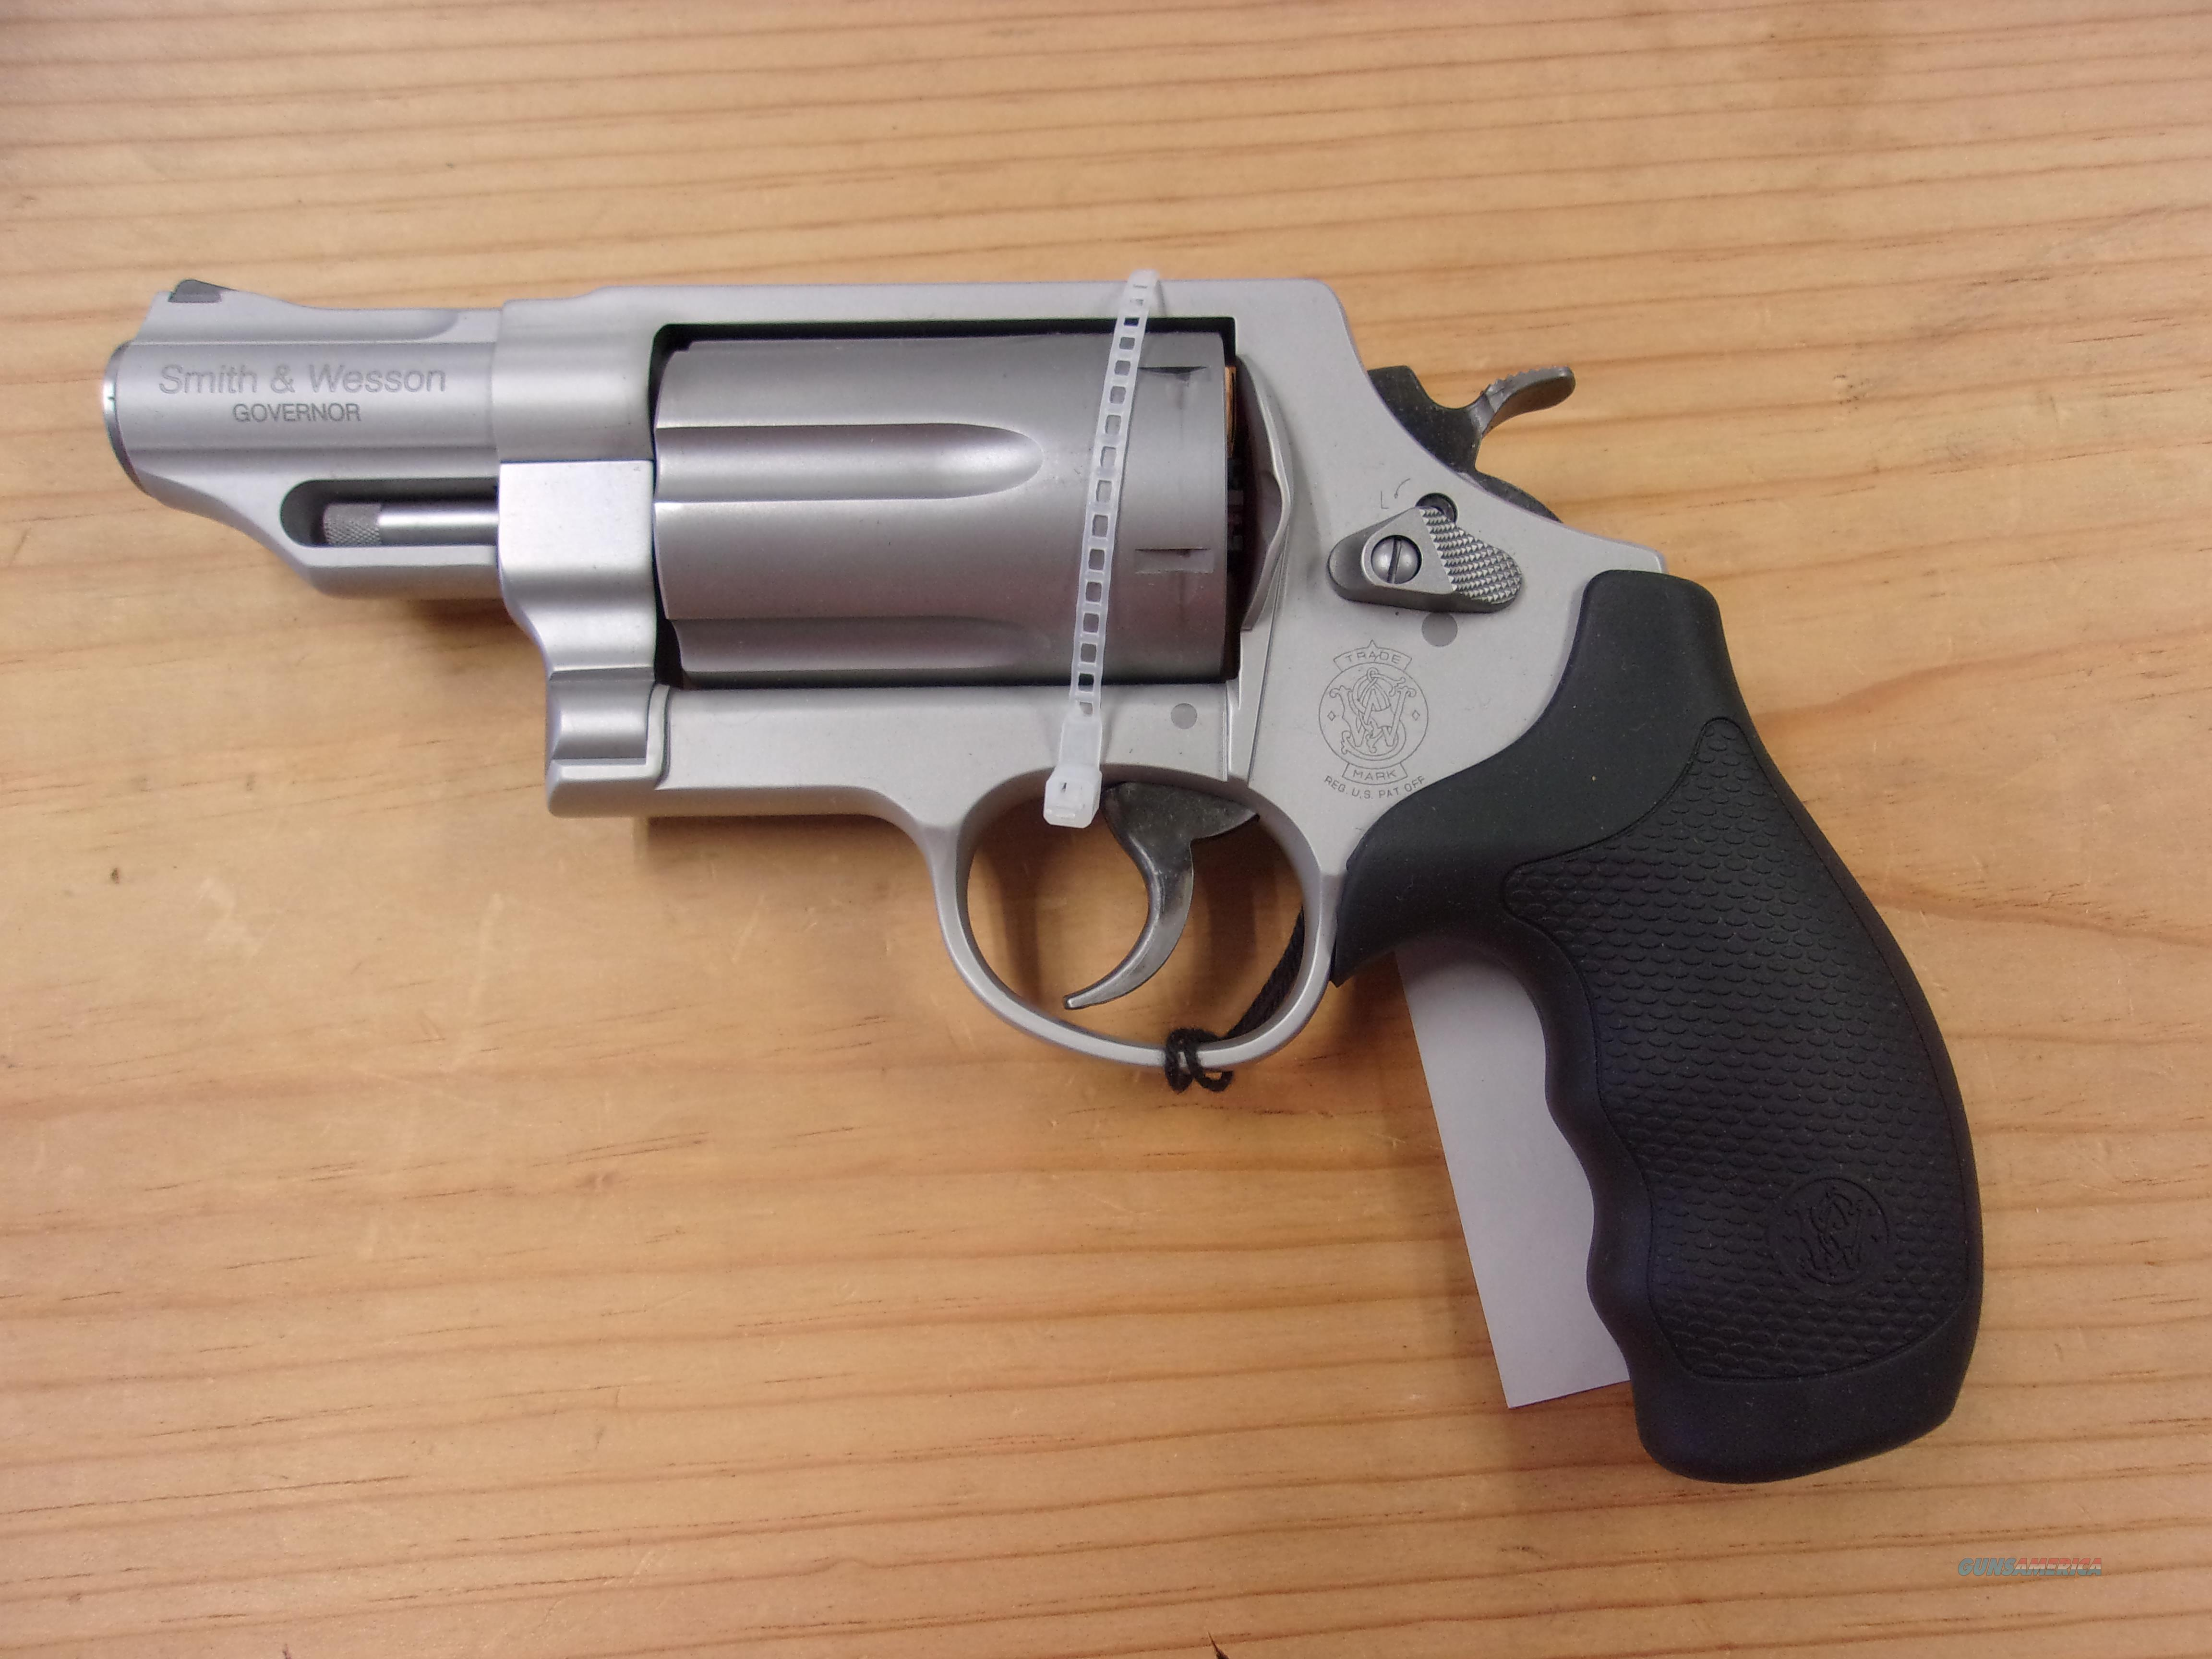 Smith & Wesson Governor  Guns > Pistols > Smith & Wesson Revolvers > Med. Frame ( K/L )